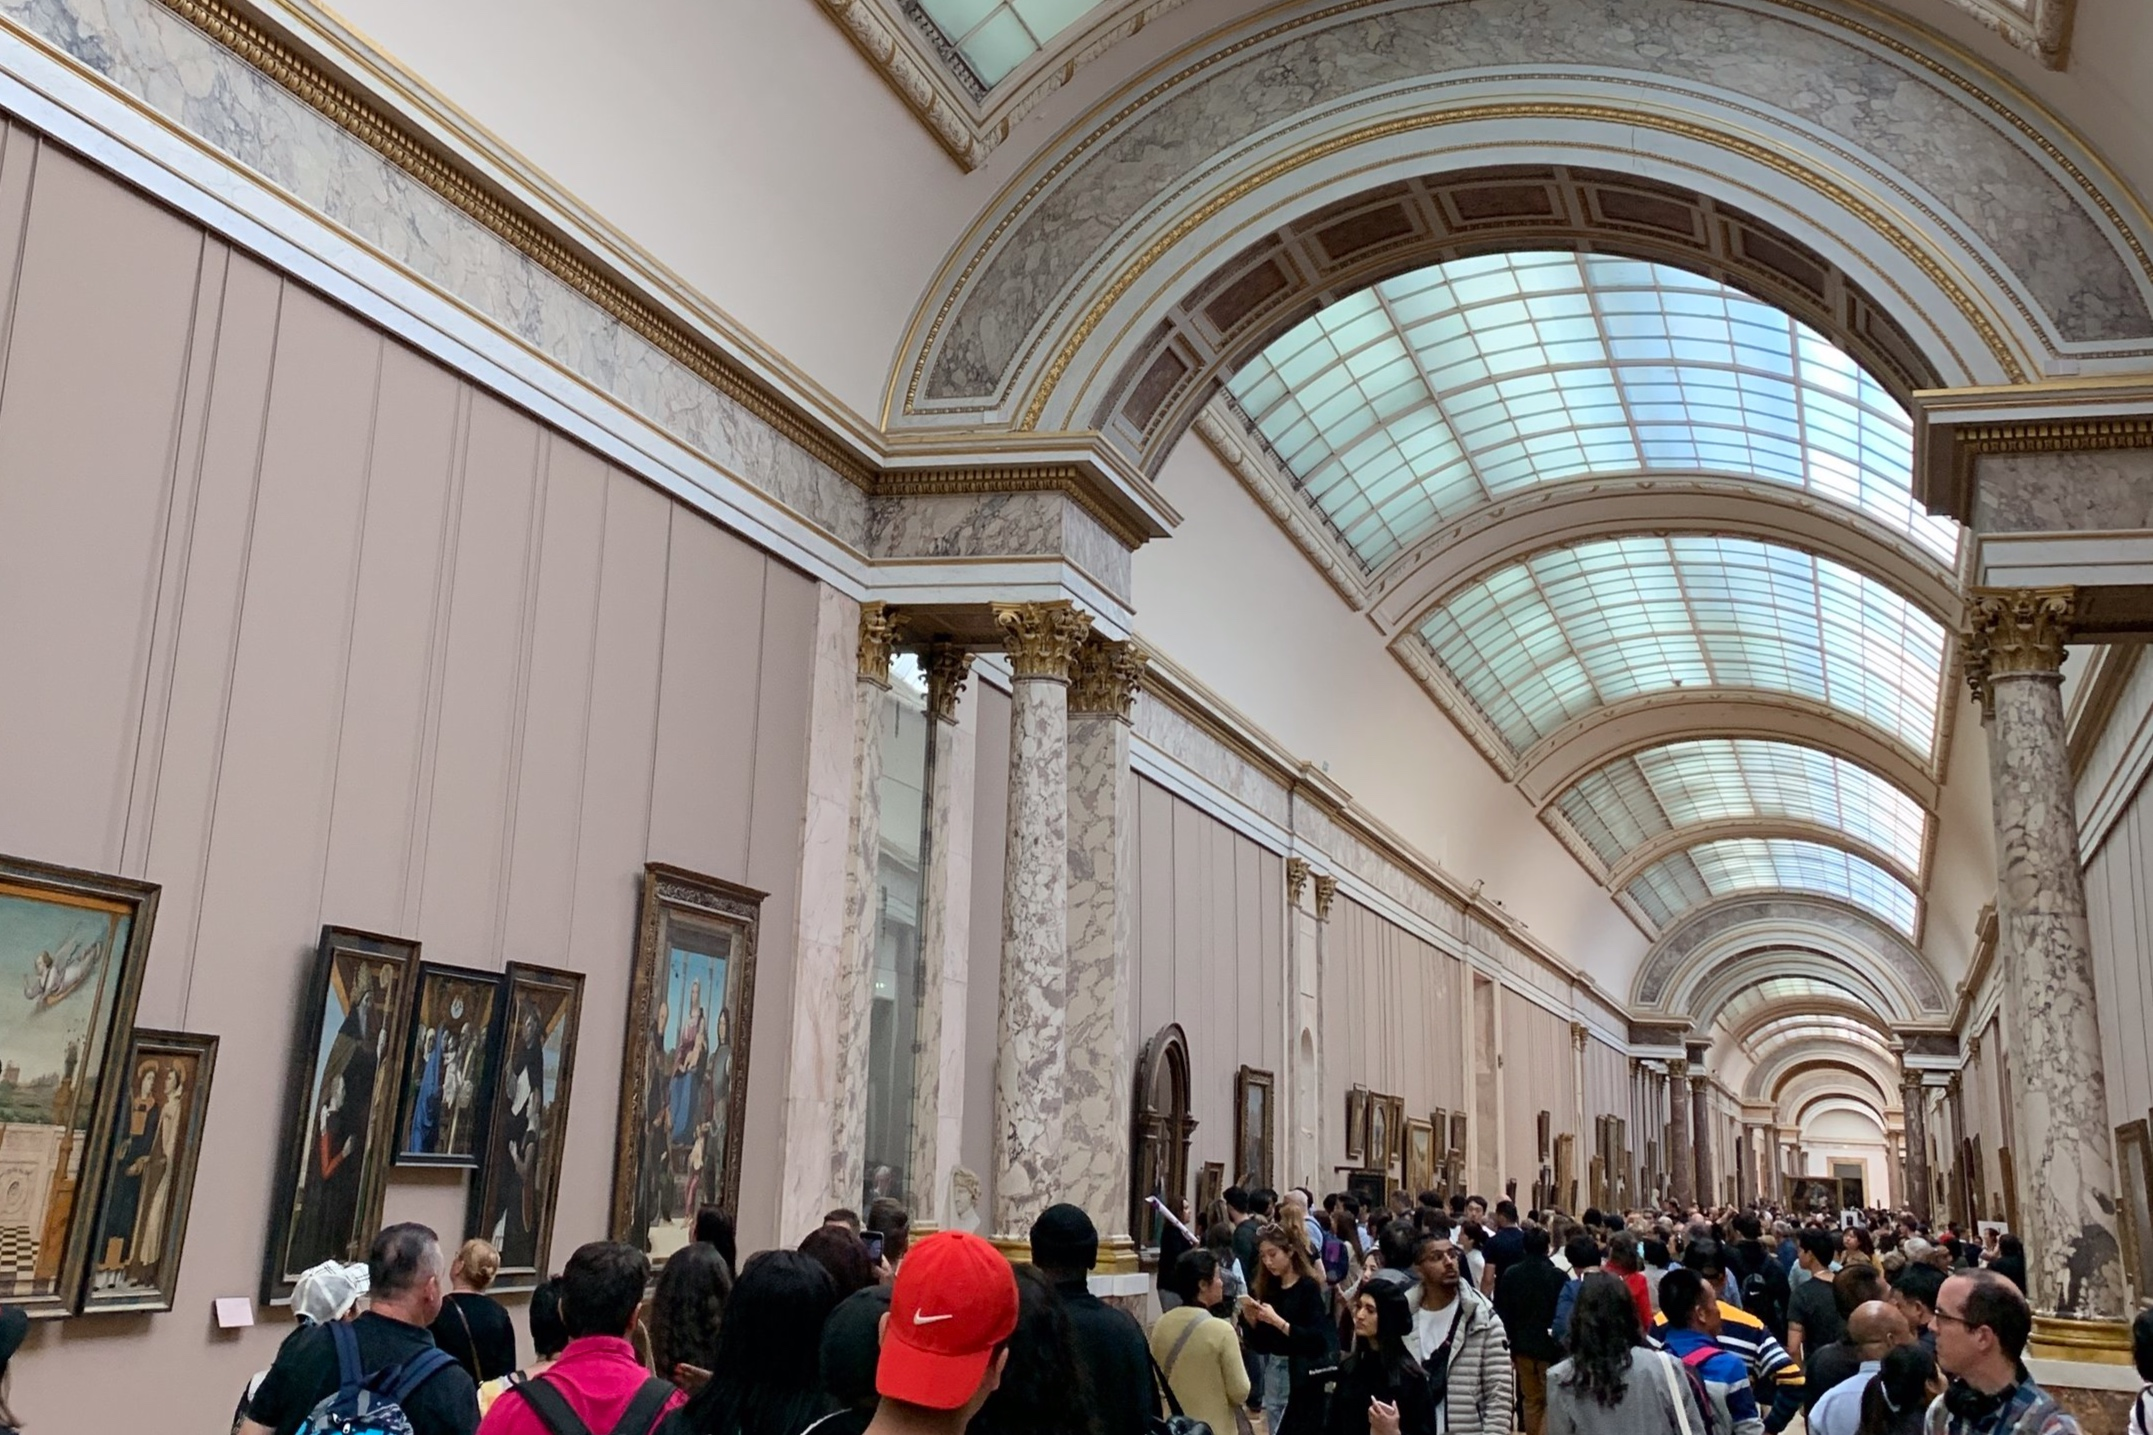 Yeah, you could say the Louvre is popular.